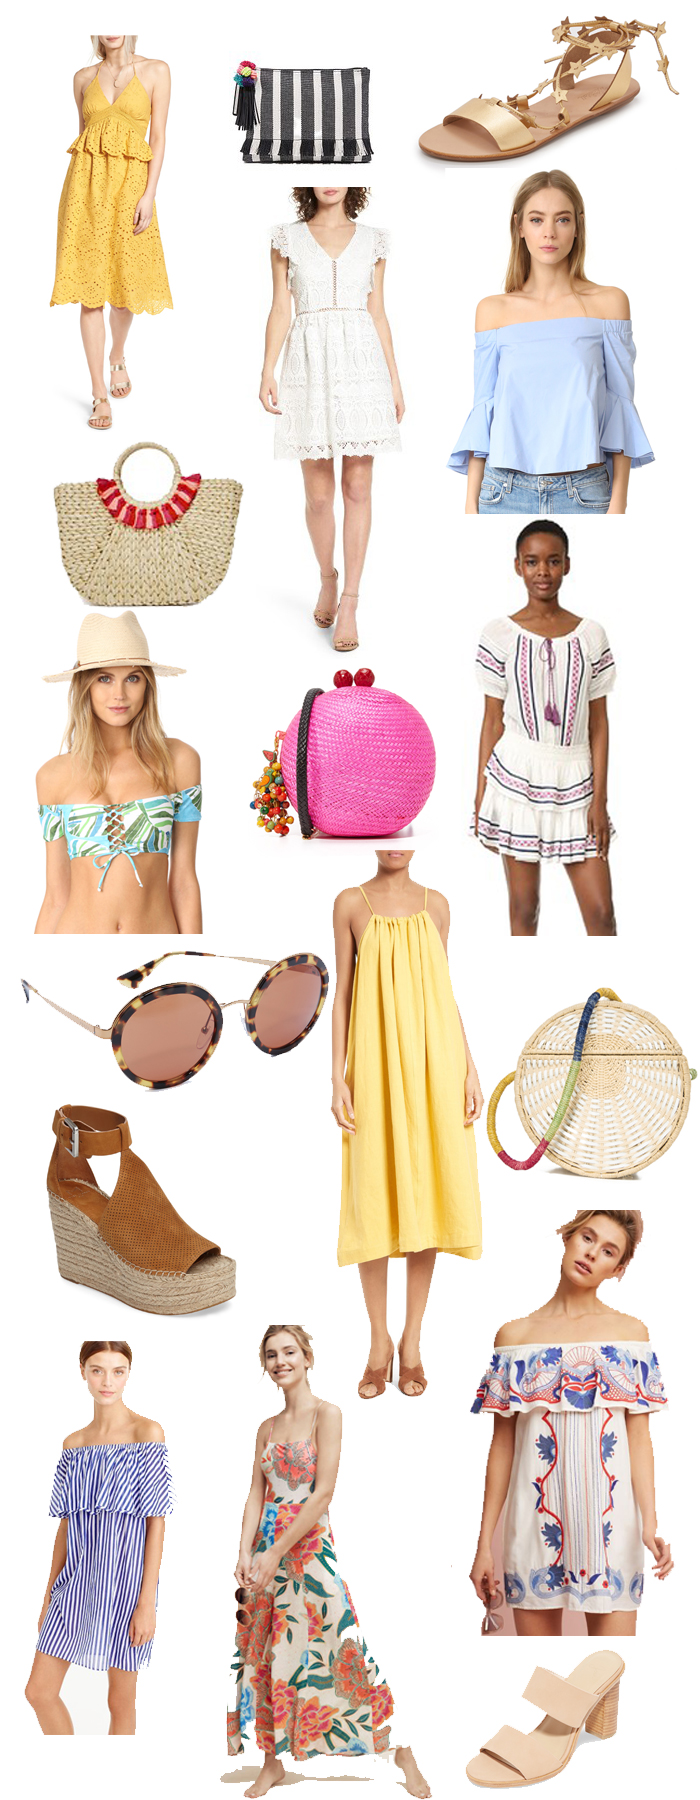 spring finds vacation destination, vacation wear 2017, spring break outfits 2017, spring outfits, beach outfits for spring 2017, beach coverup, shop bop,